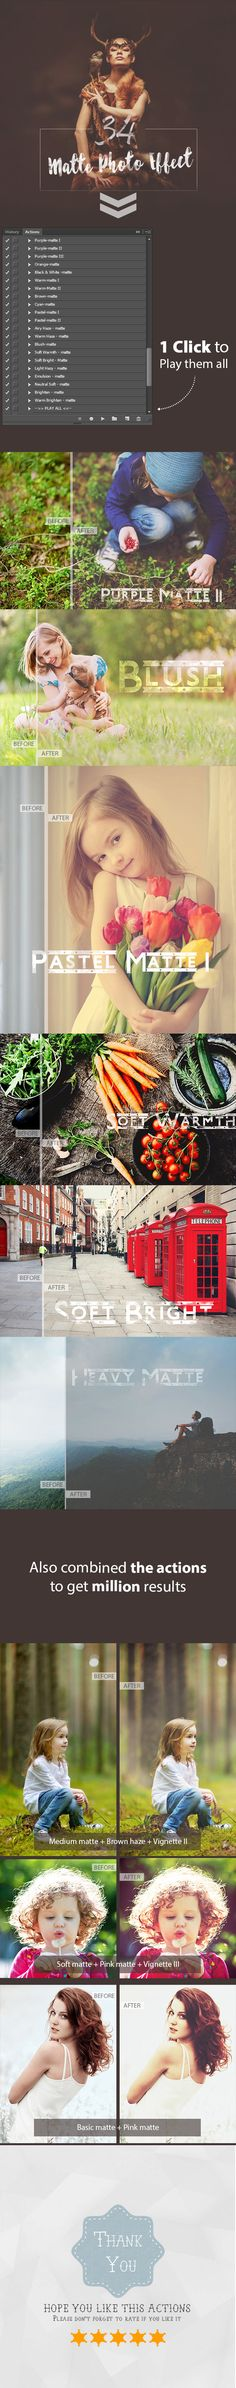 34 Matte Photo Effect Premium Collection #photoeffect #photoshop Download: http://graphicriver.net/item/34-matte-photo-effect-premium-collection/13571705?ref=ksioks